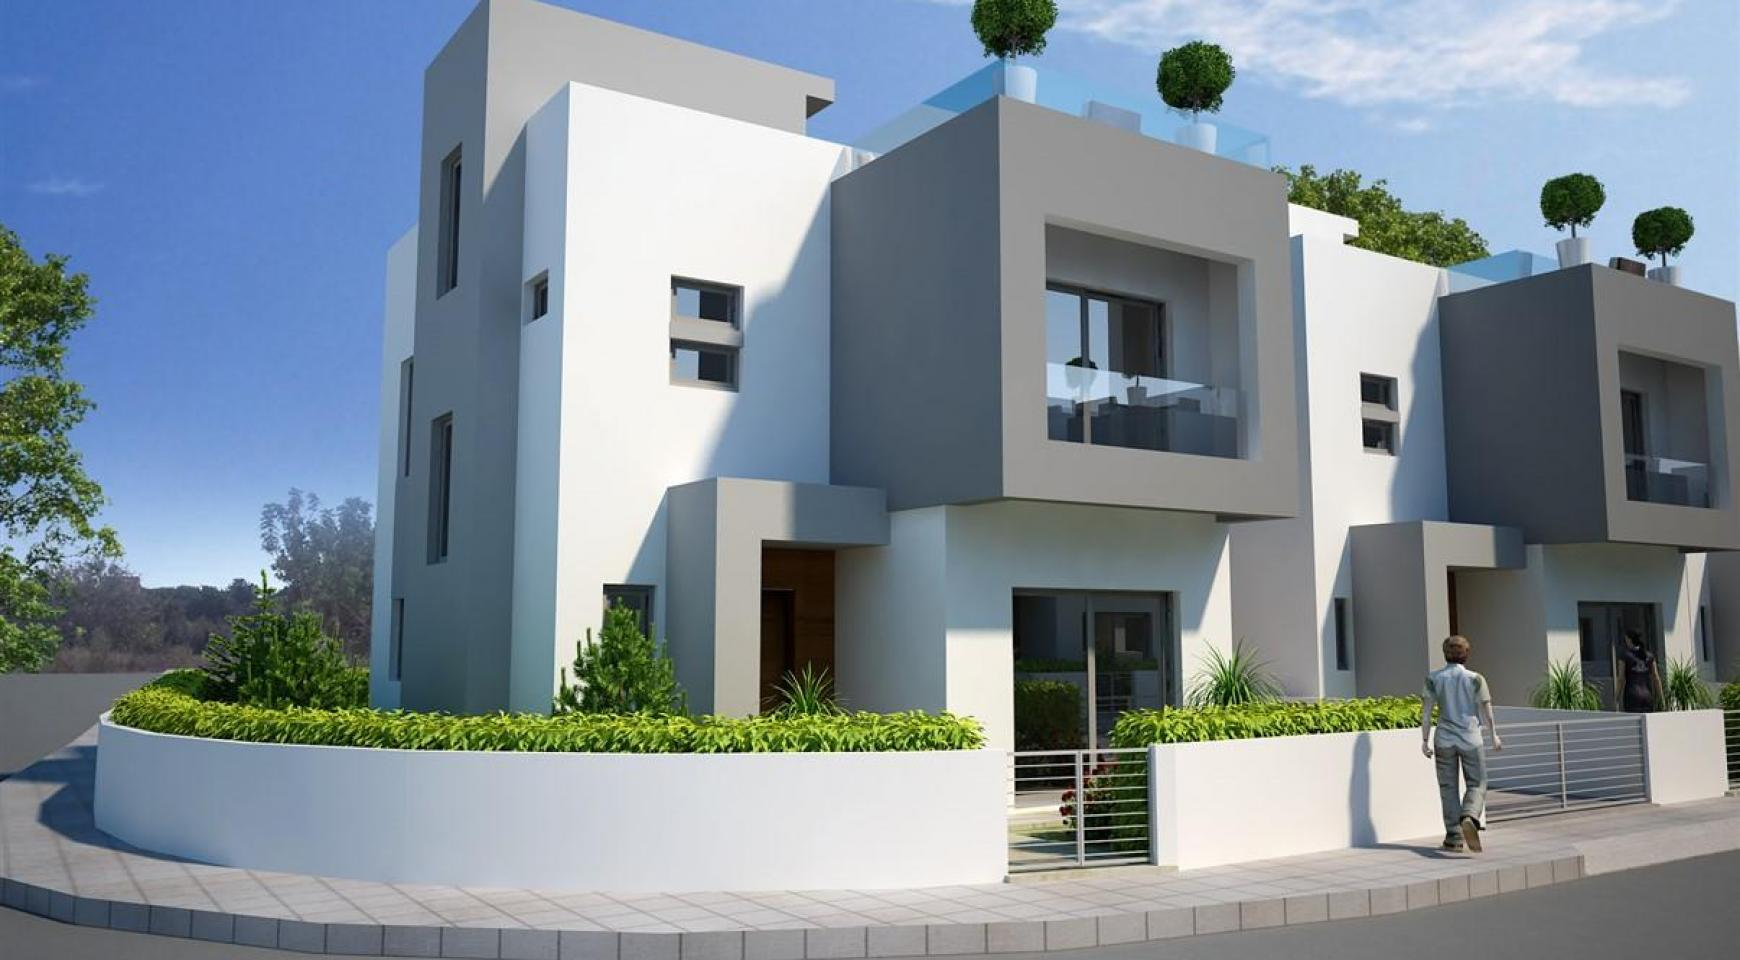 3 Bedroom Villa within a New Project - 27